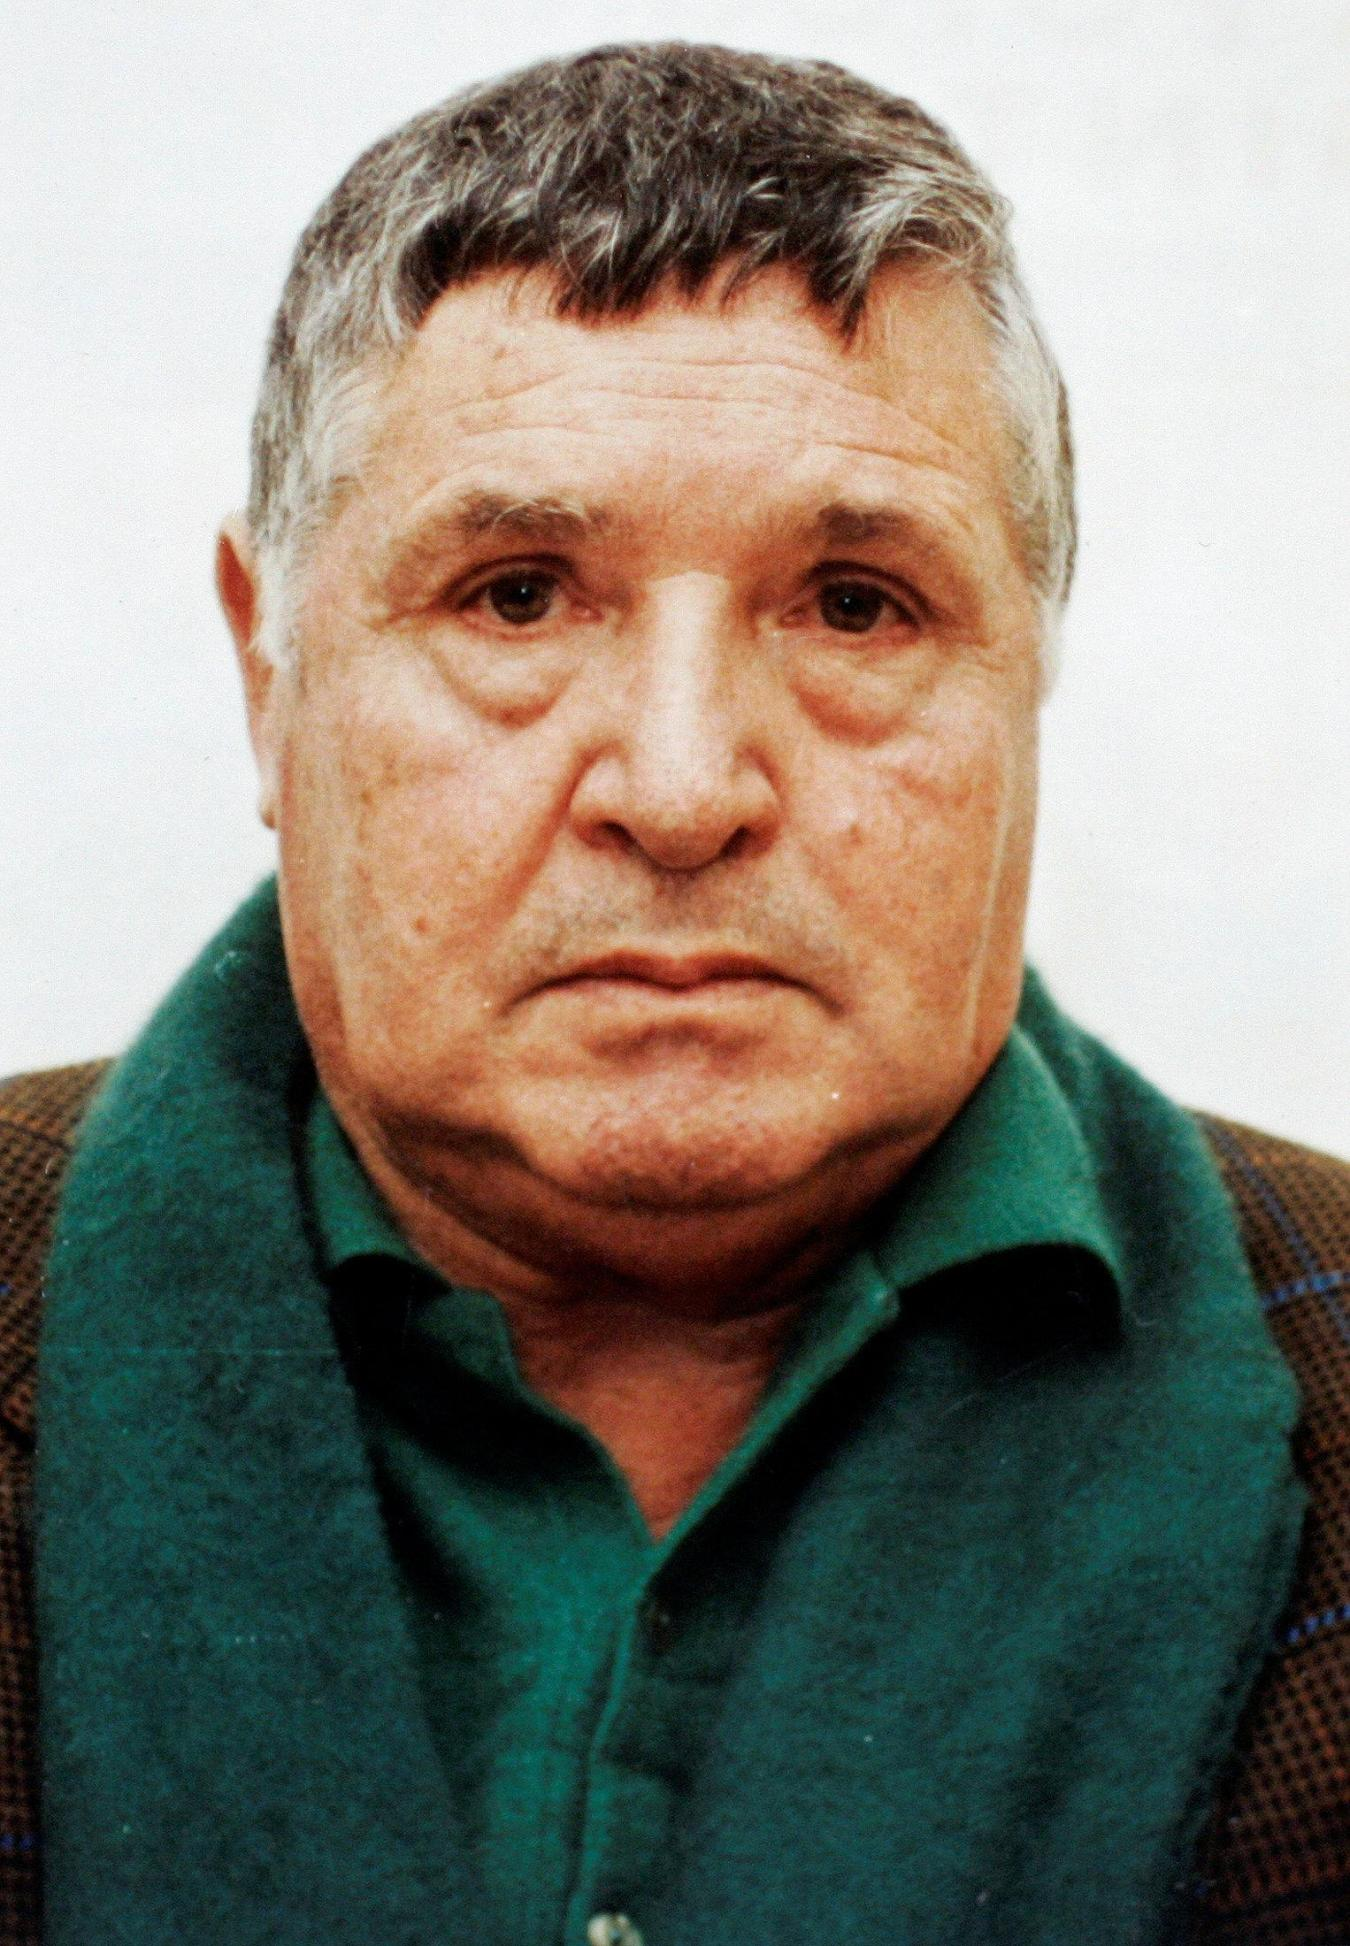 Among the most infamous murders ordered by Riina was that of a police informer's 13-year-old son